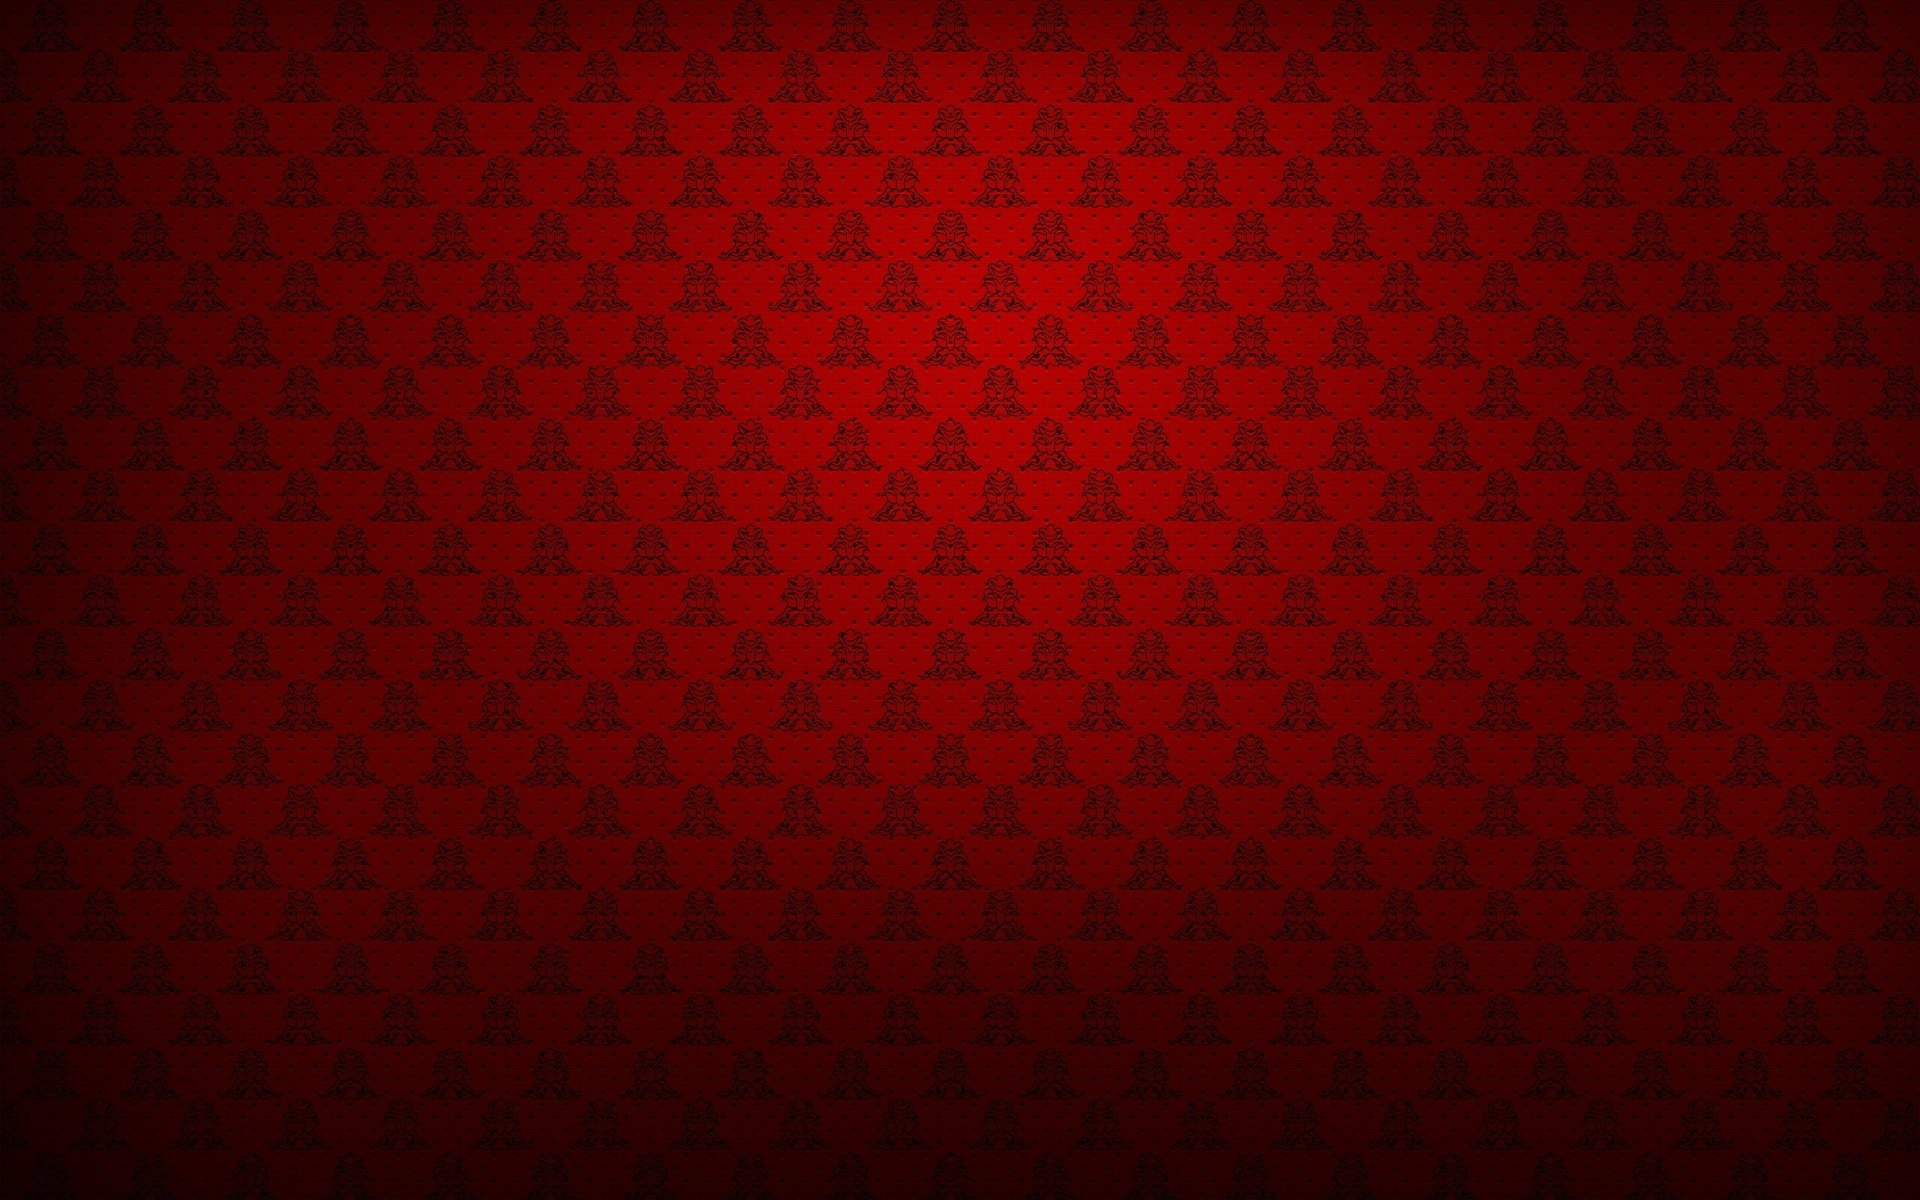 Best-new-background-patterns-Red-Patterns-1920-Red-Patterns-Background-Imageif-thr-wallpaper-wp3603293